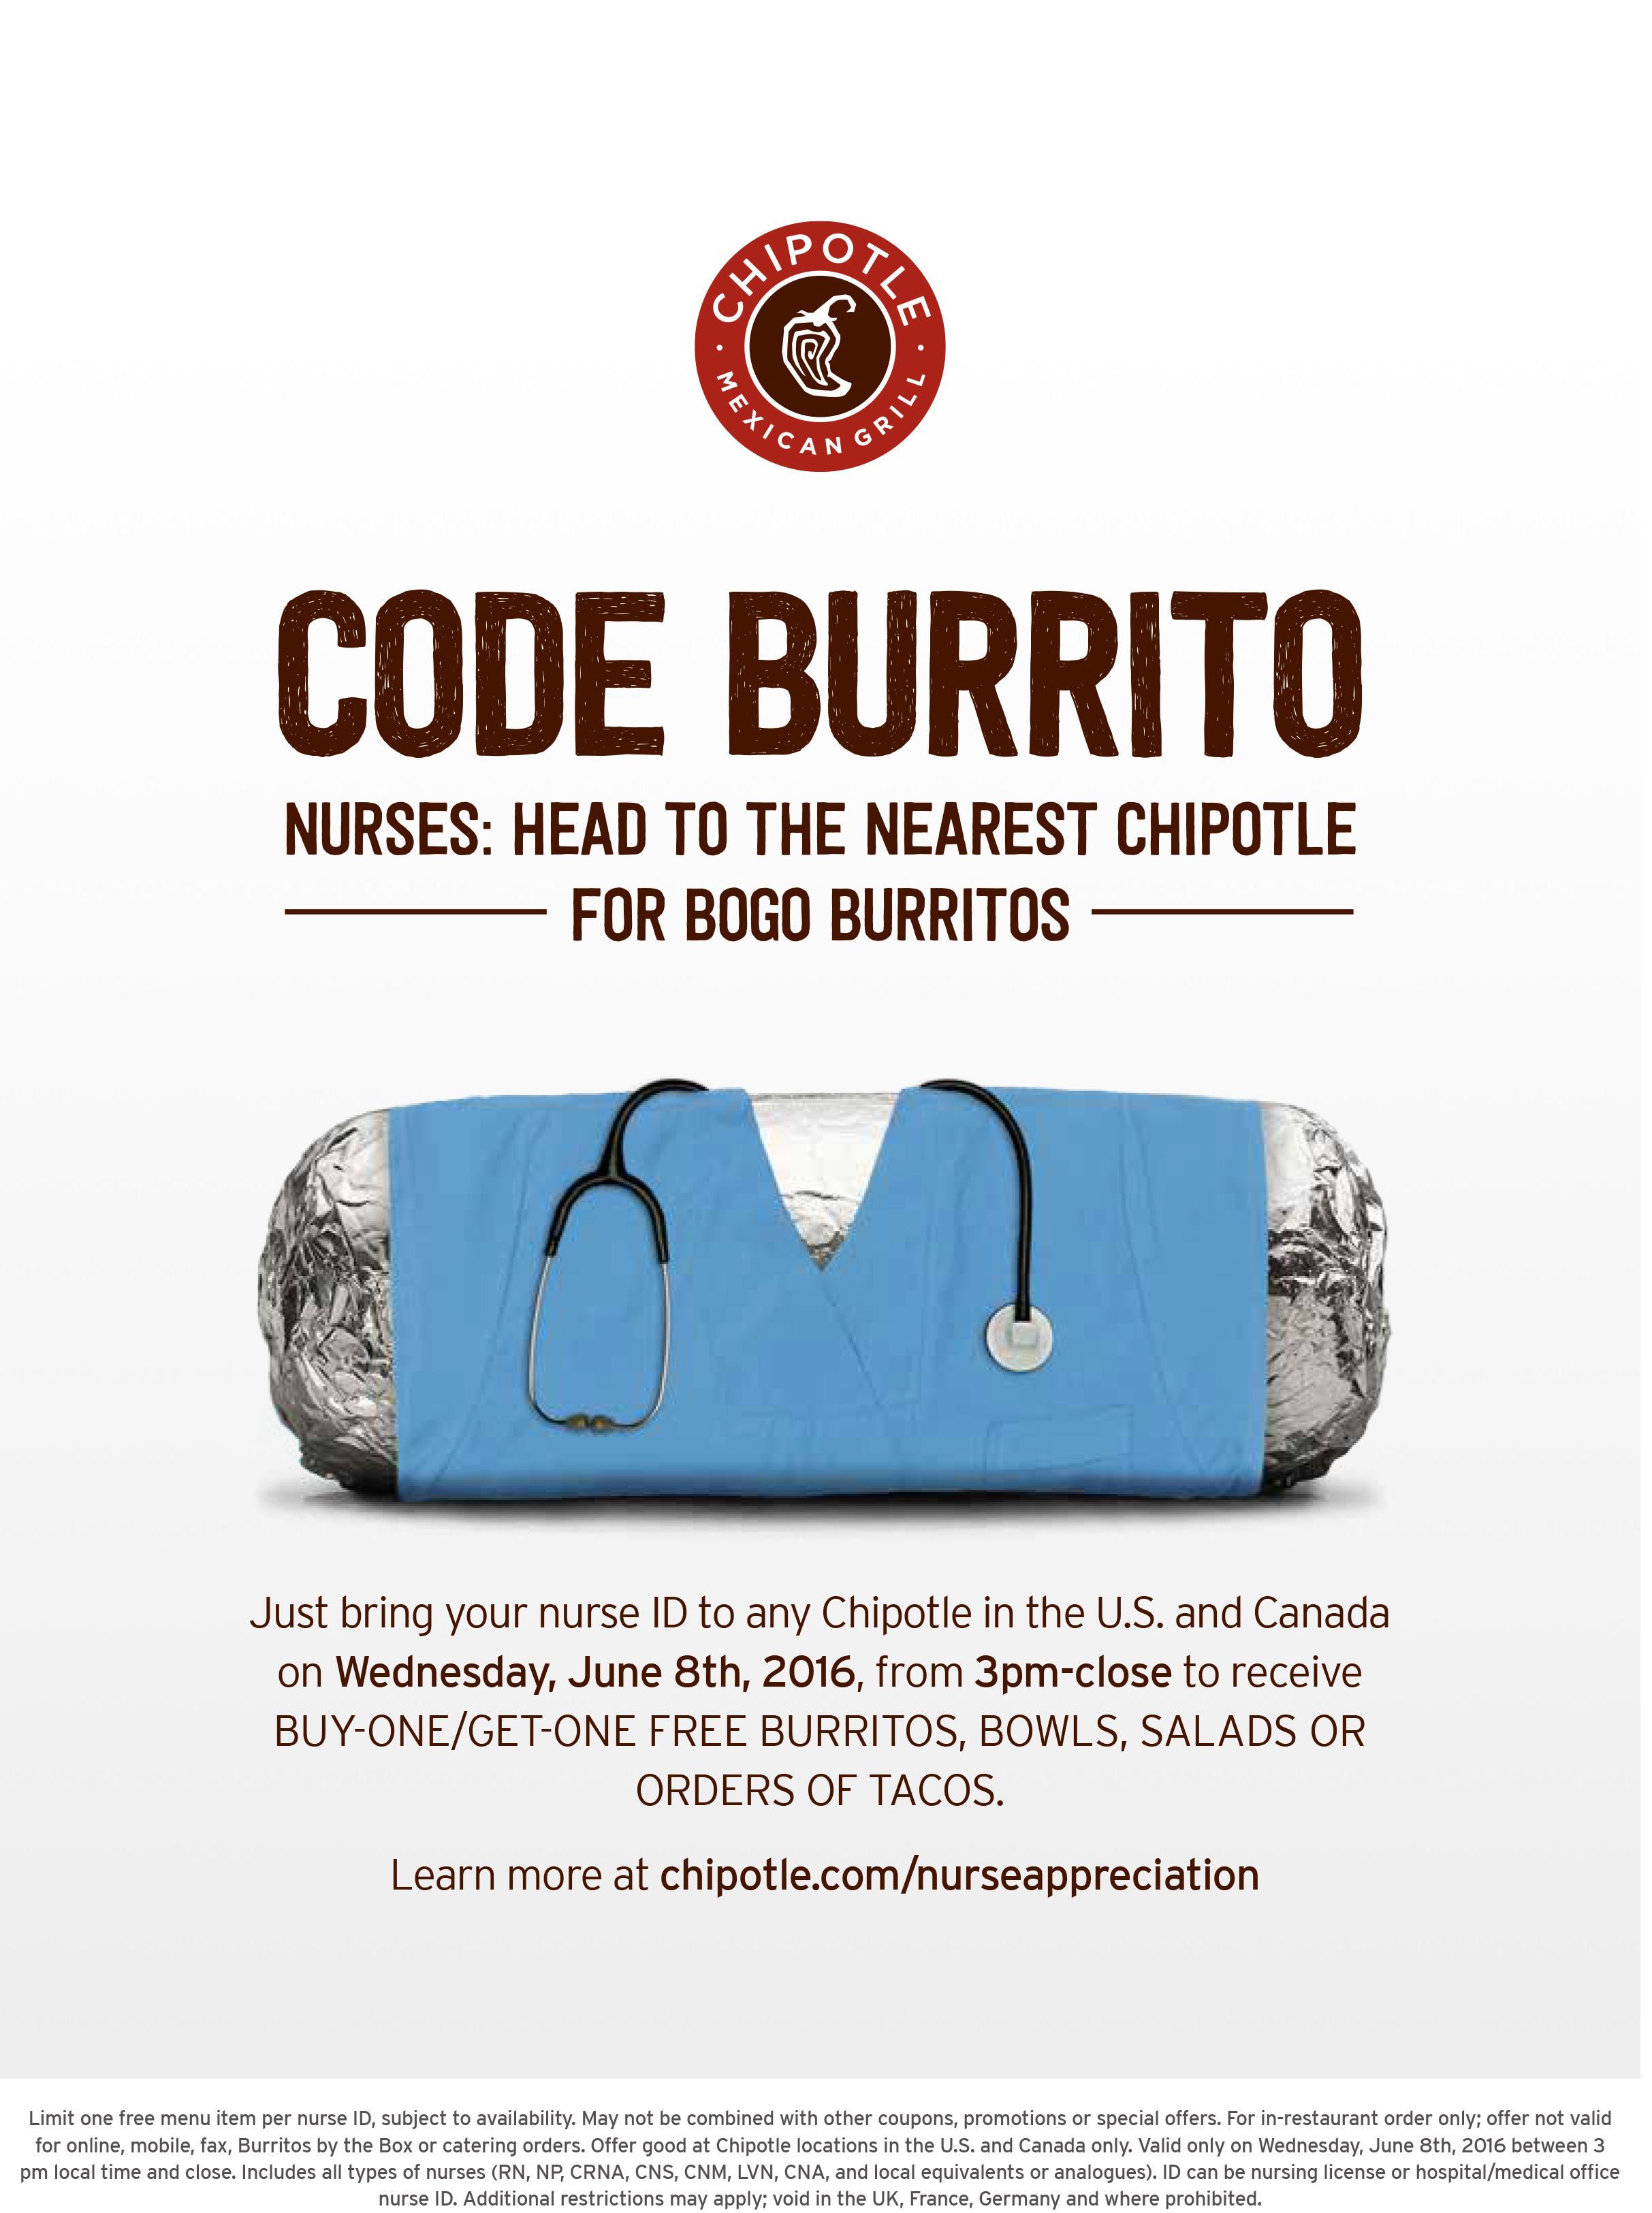 21db23b99 Just What the Doctor Ordered: Chipotle Celebrates Nurses with Special BOGO  Promotion | Business Wire